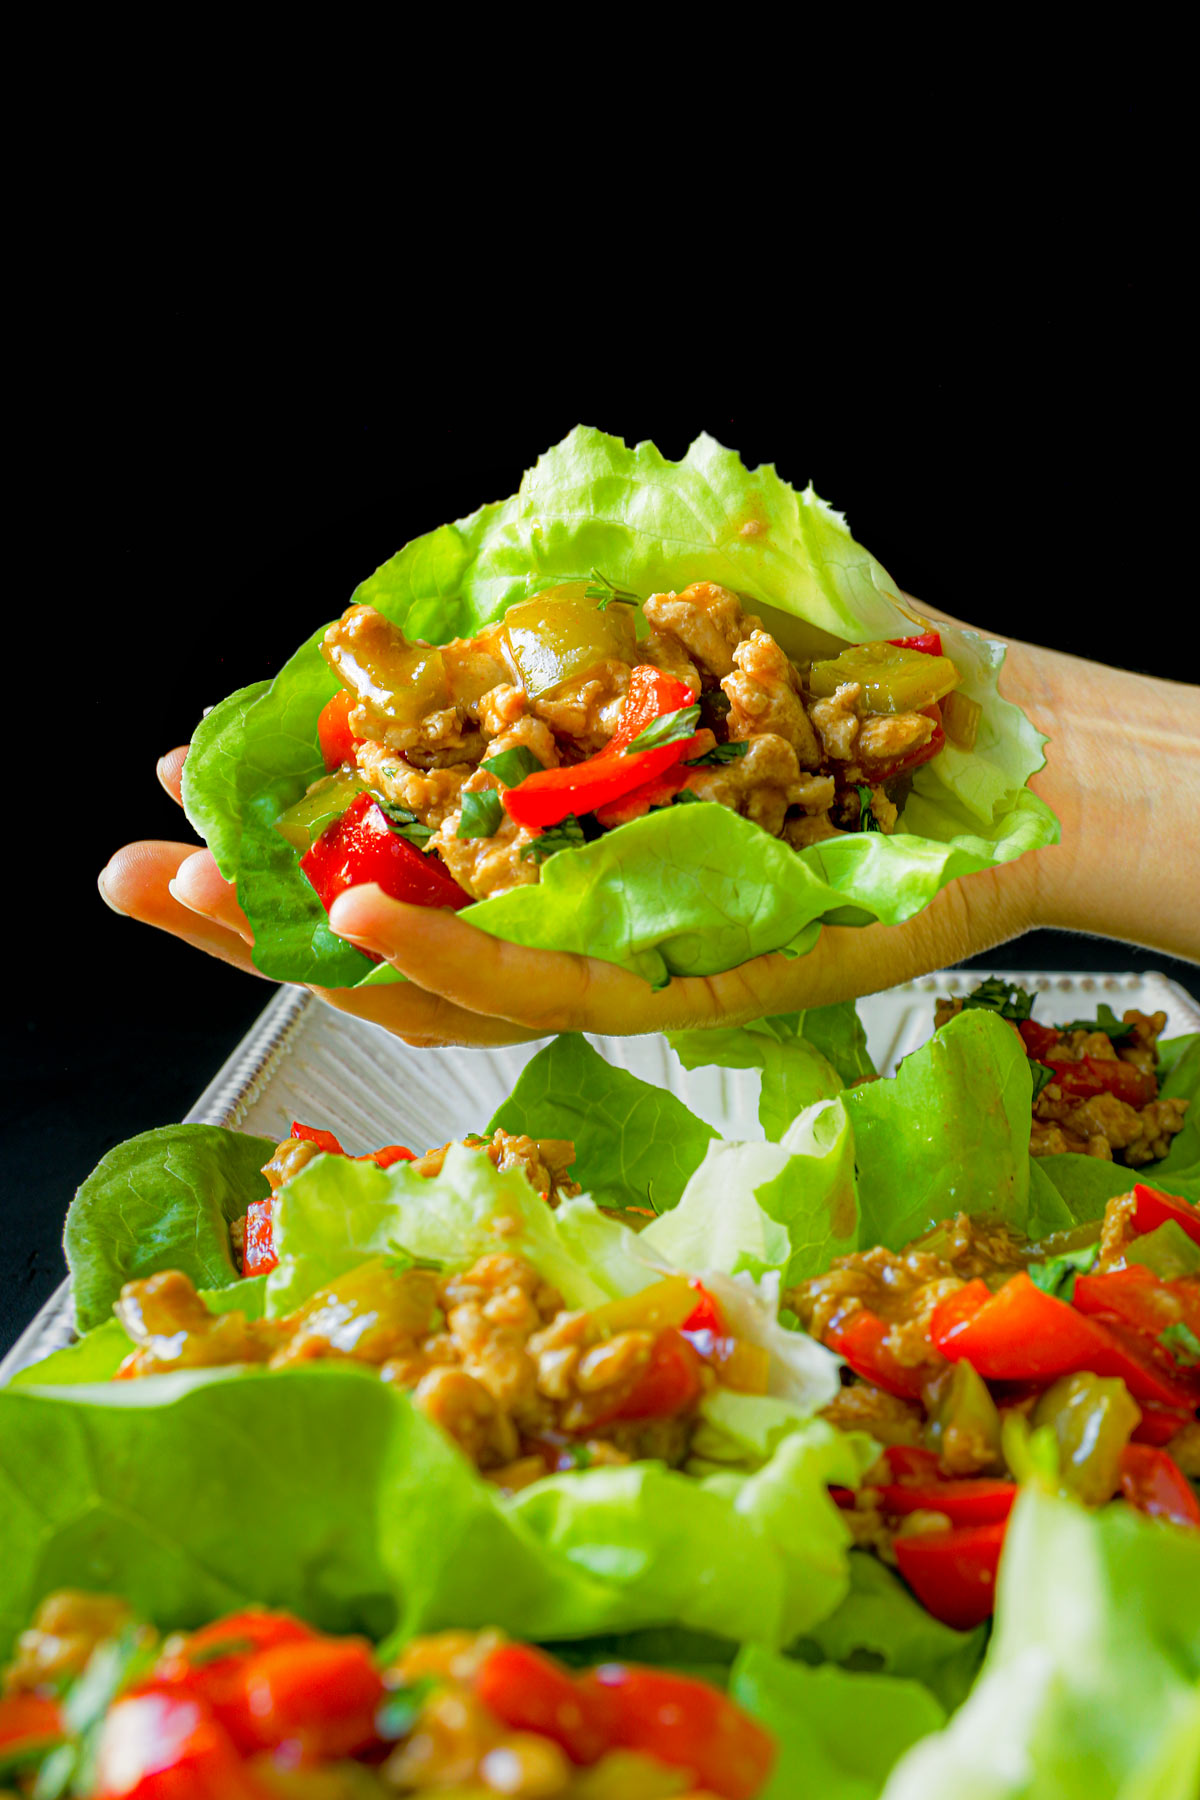 hand holding a turkey lettuce wrap over a platter of wraps.